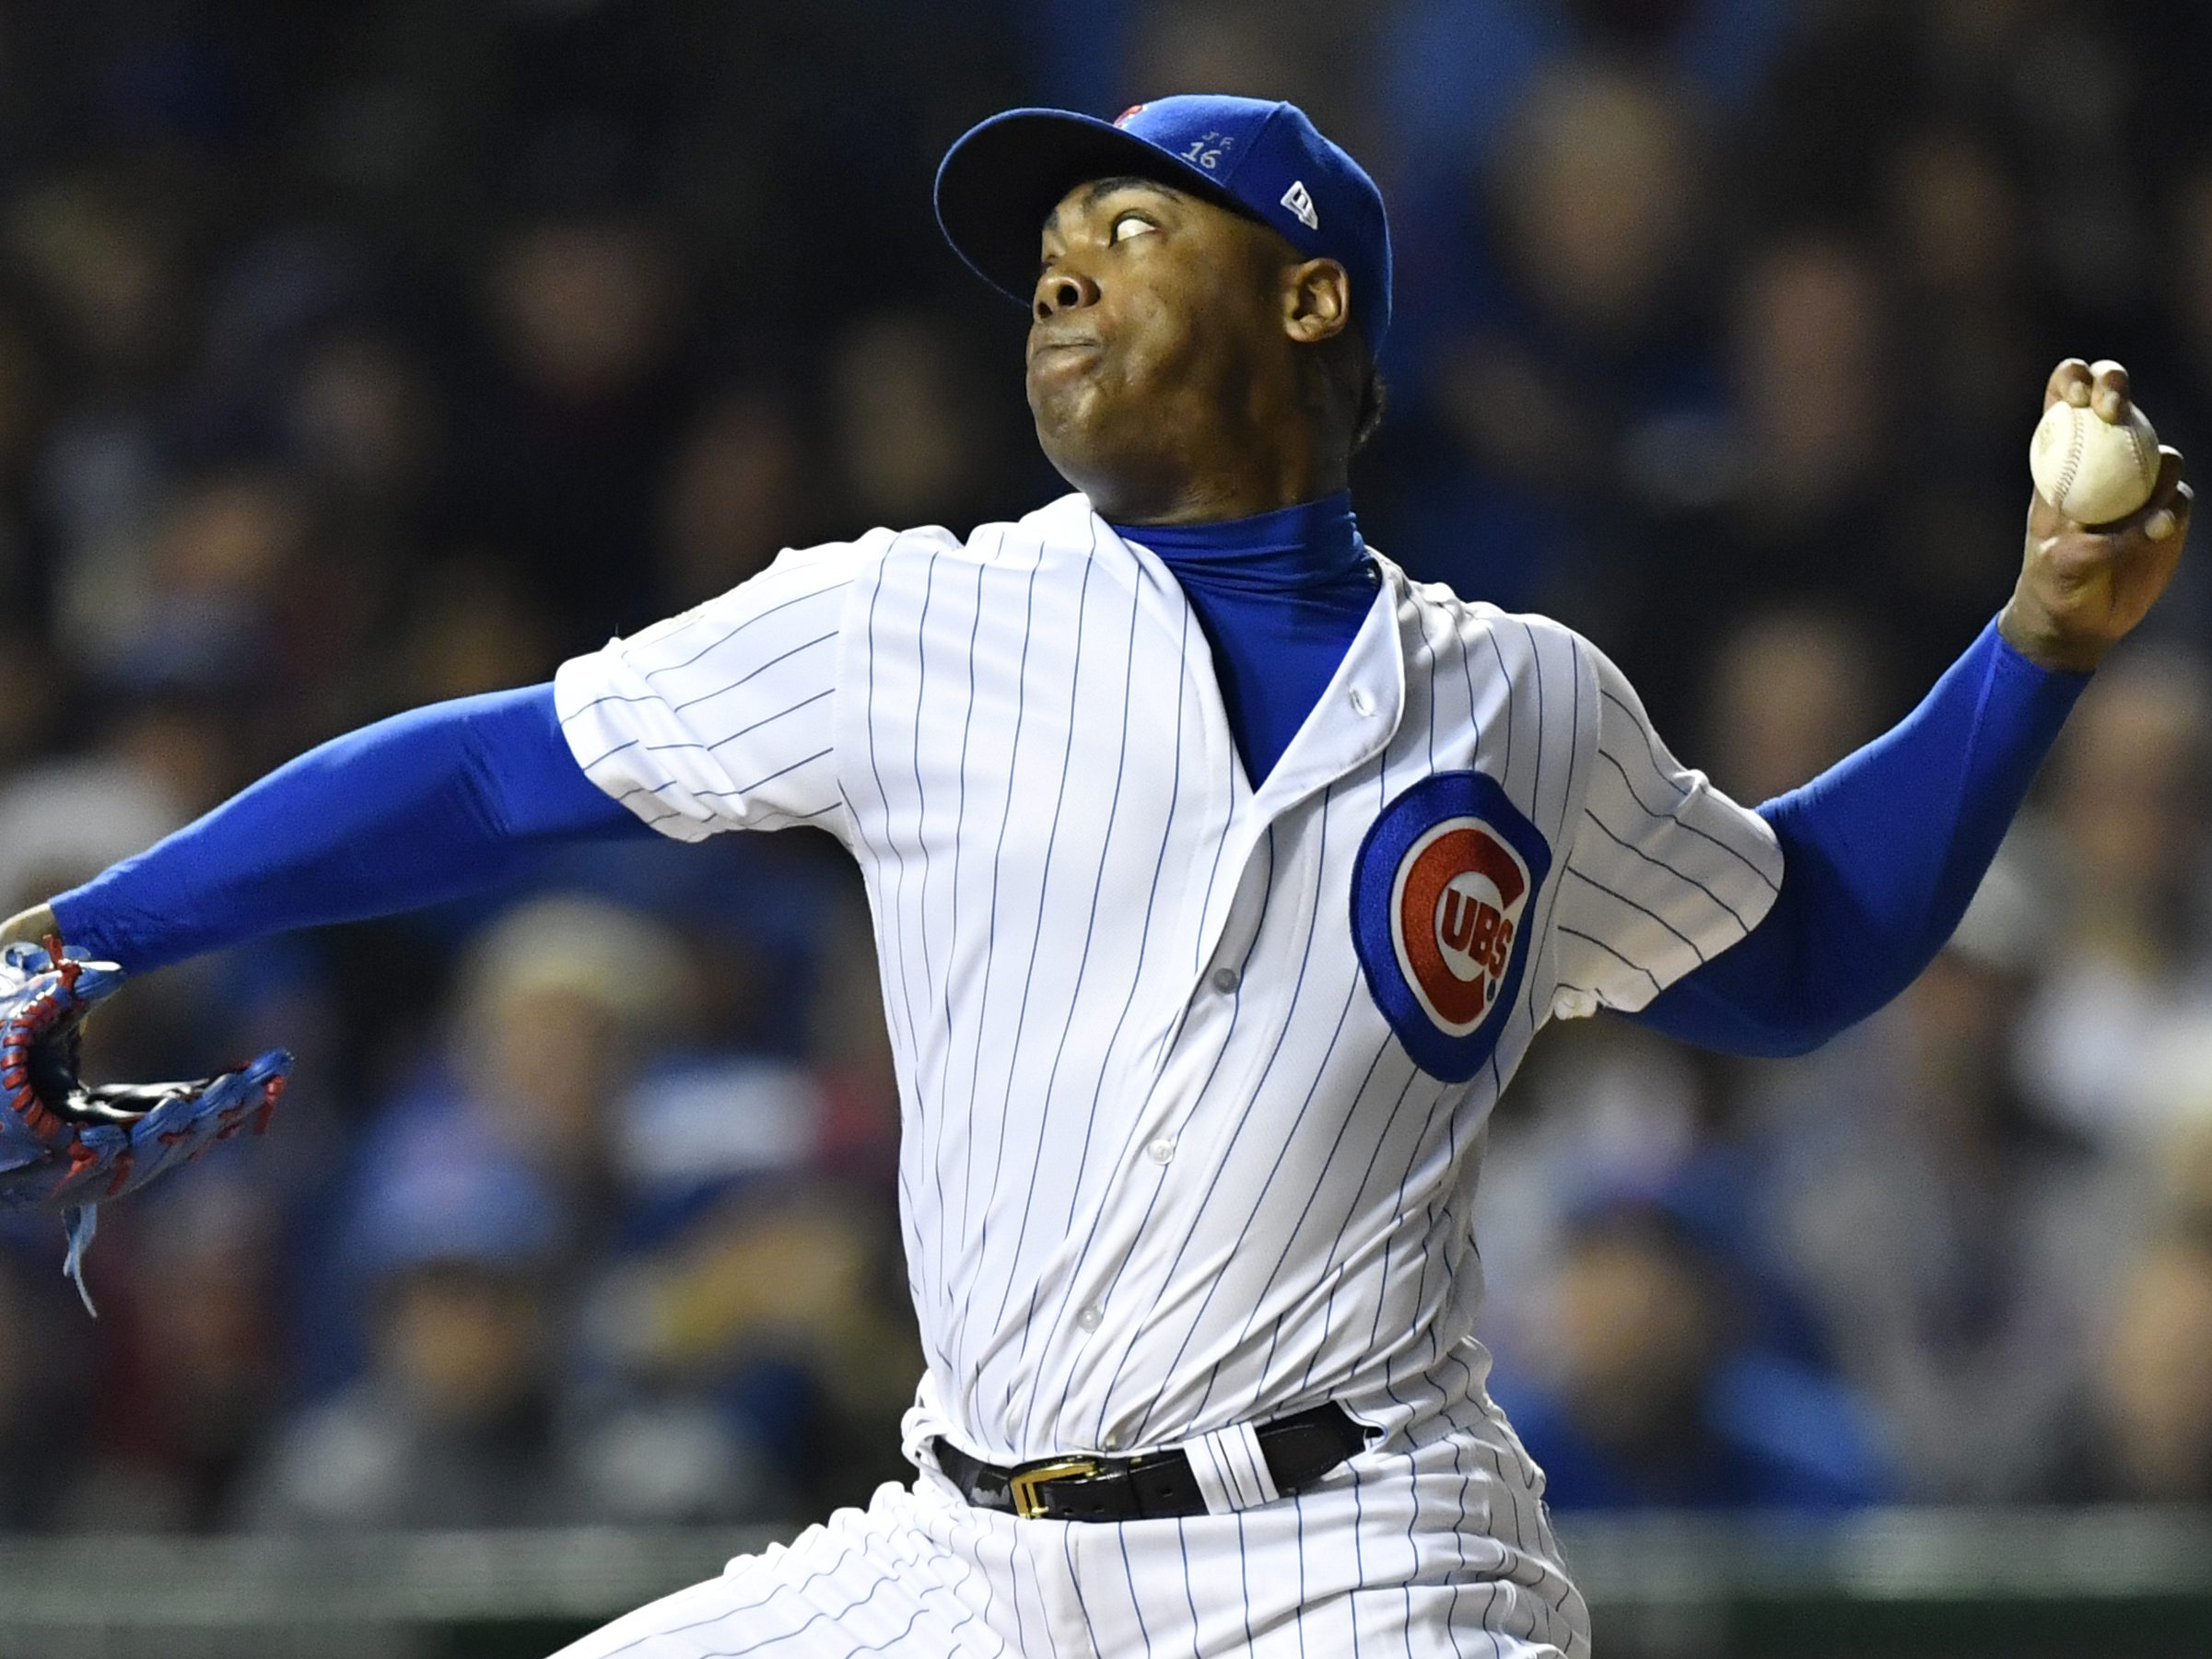 MLB: OCT 28 World Series – Game 3 – Indians at Cubs